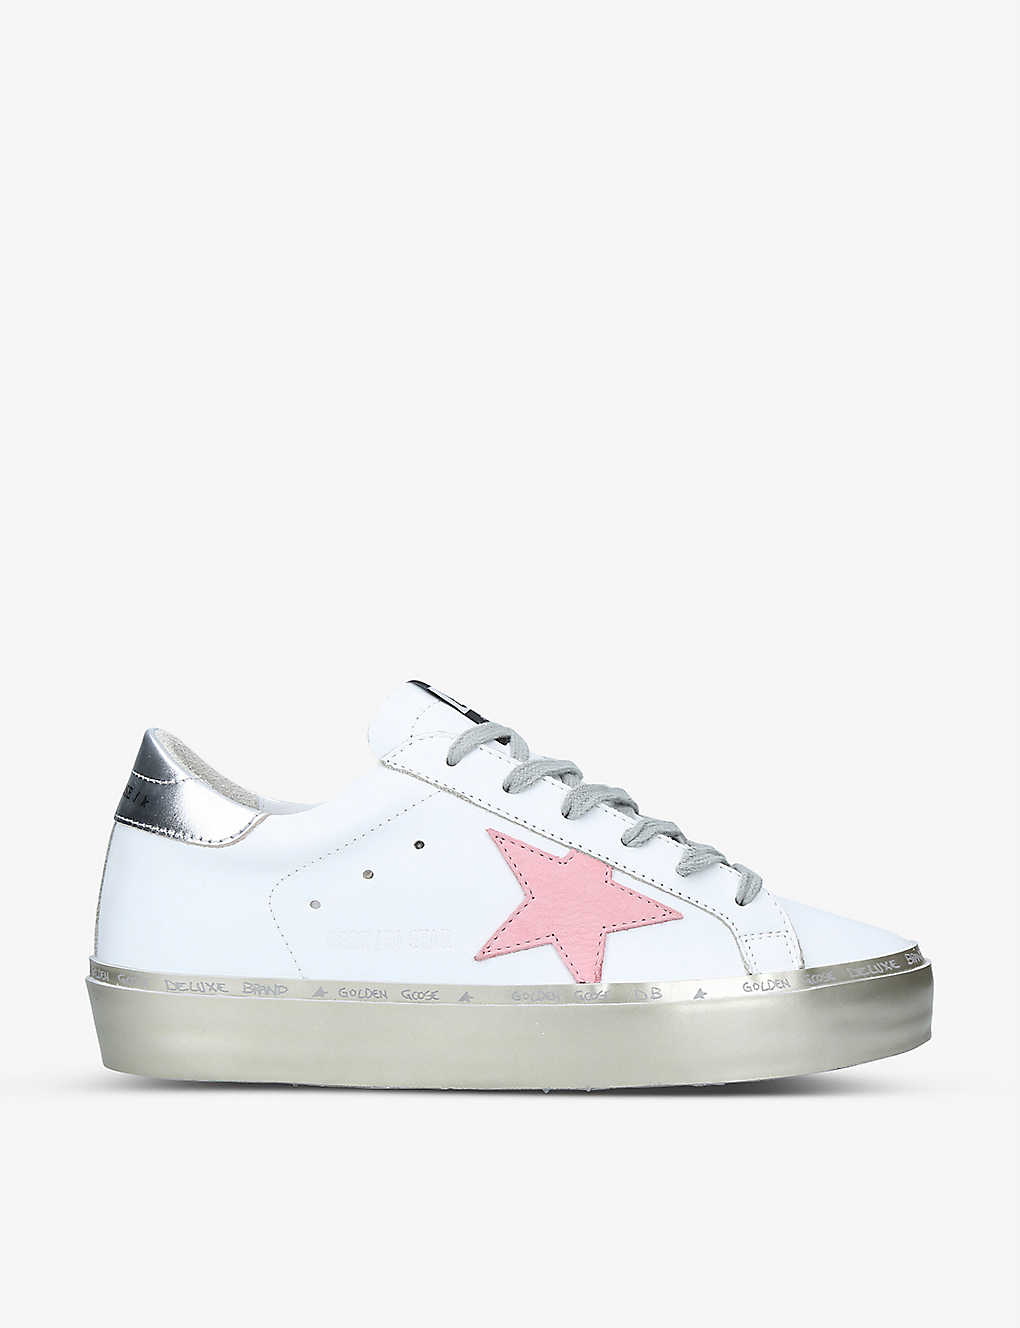 Golden Goose HI STAR EMBROIDERED LEATHER TRAINERS